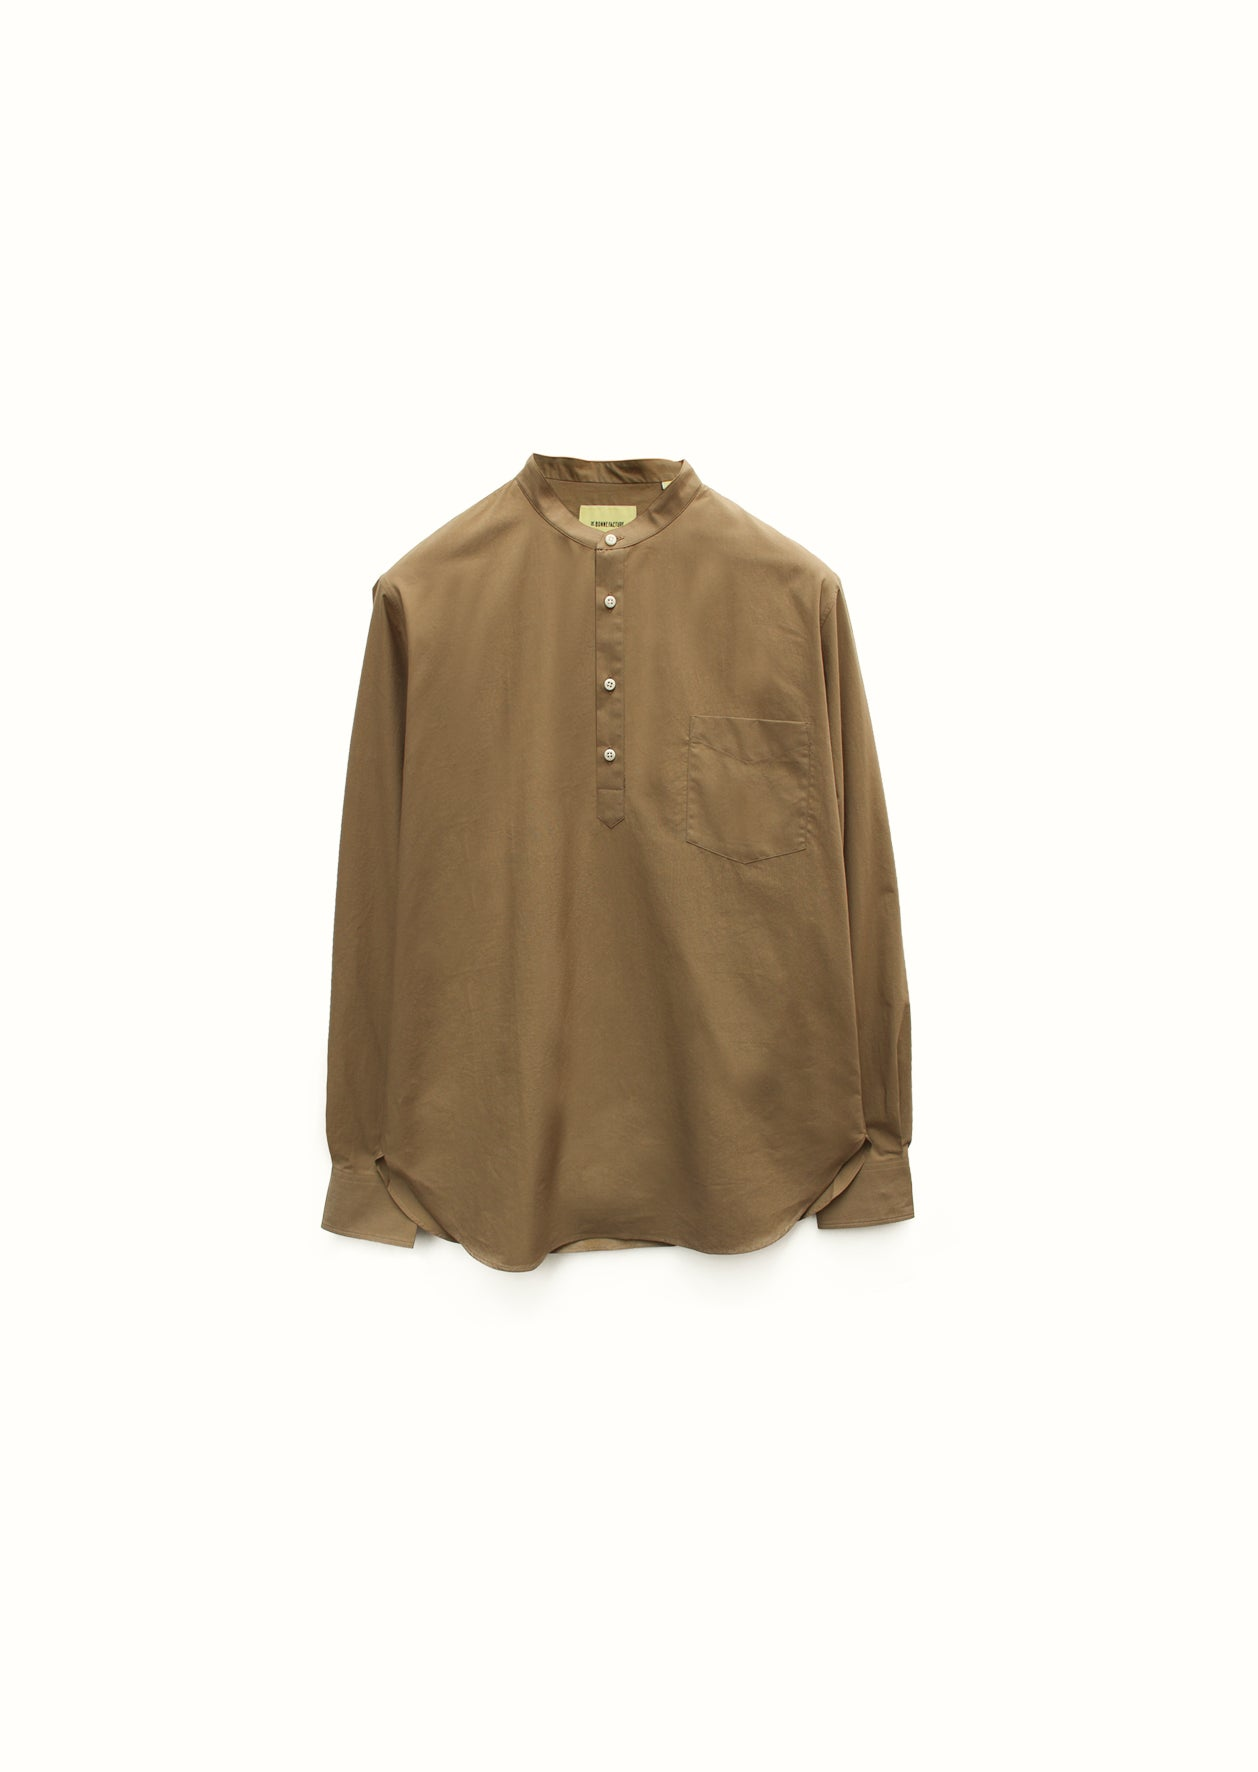 Mao collar popover shirt - Typewriter cotton - Beige - De Bonne Facture